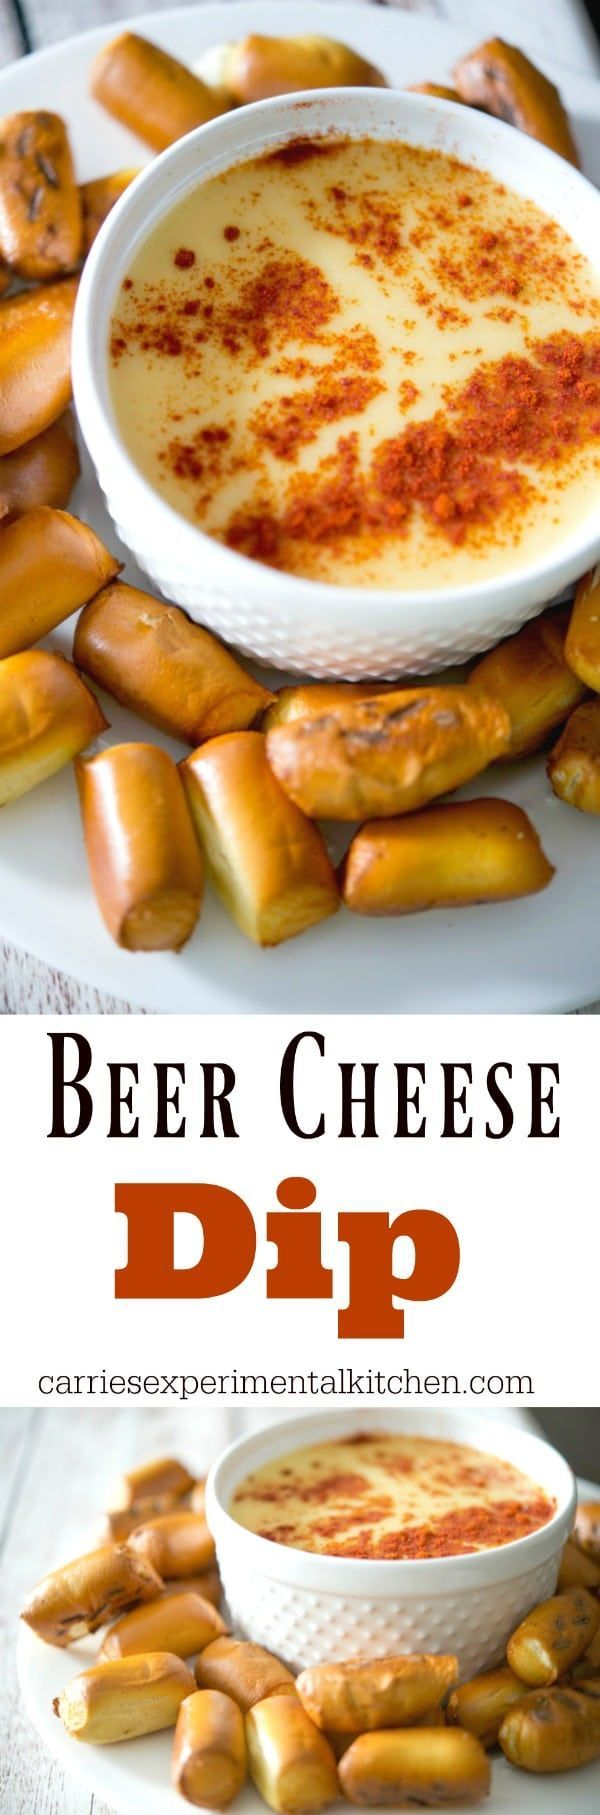 Beer Cheese Dip made with Blue Moon Belgian White beer, Colby Jack and sharp White Cheddar cheeses and hot sauce. Dip your favorite tortilla chip or pretzels for a tasty game day snack.  #dip #cheese #beer #appetizer #gameday #football